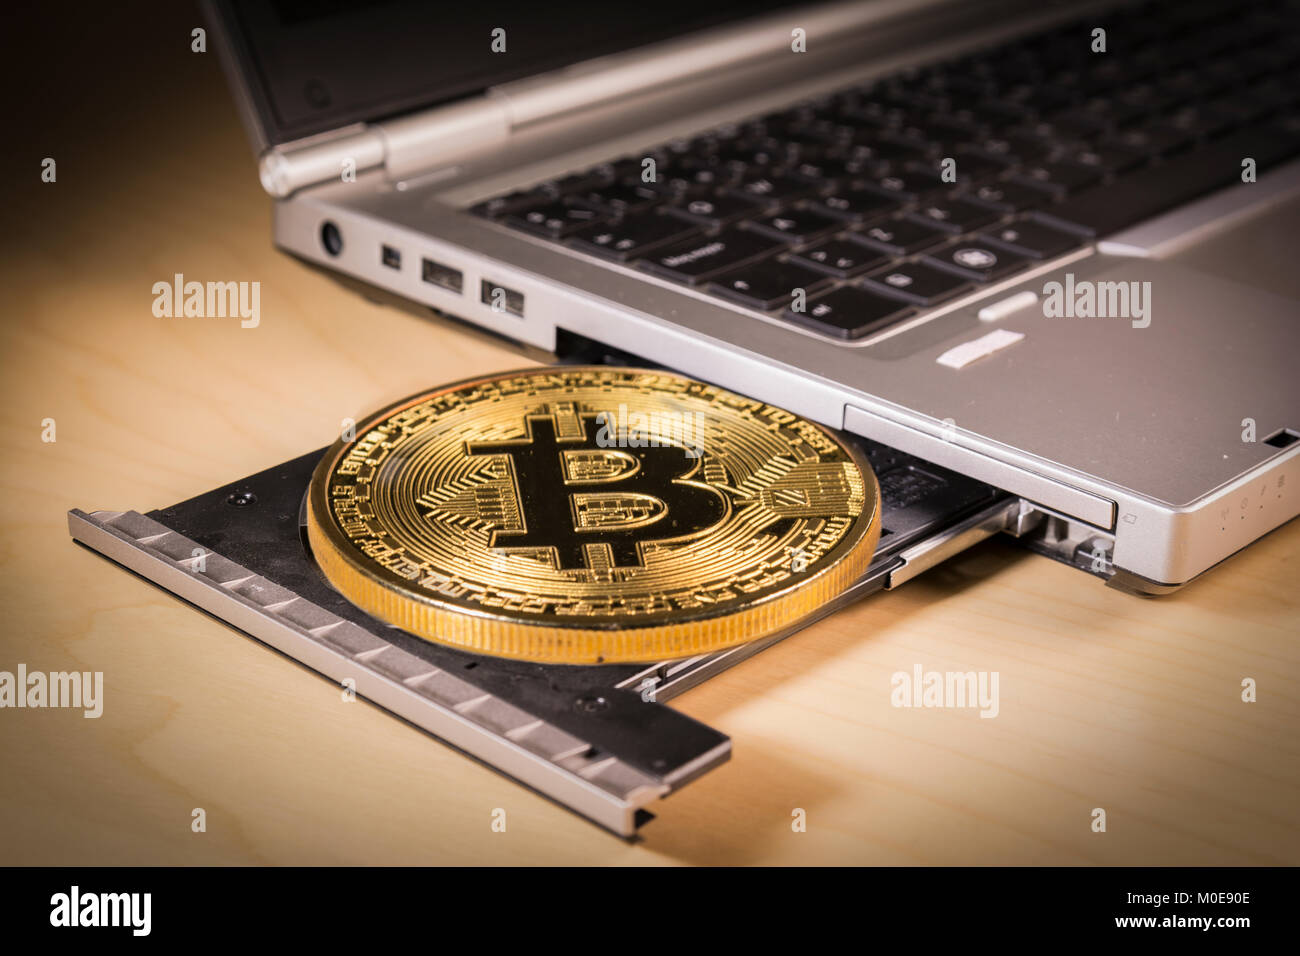 Mine bitcoins with laptop best online football betting sites